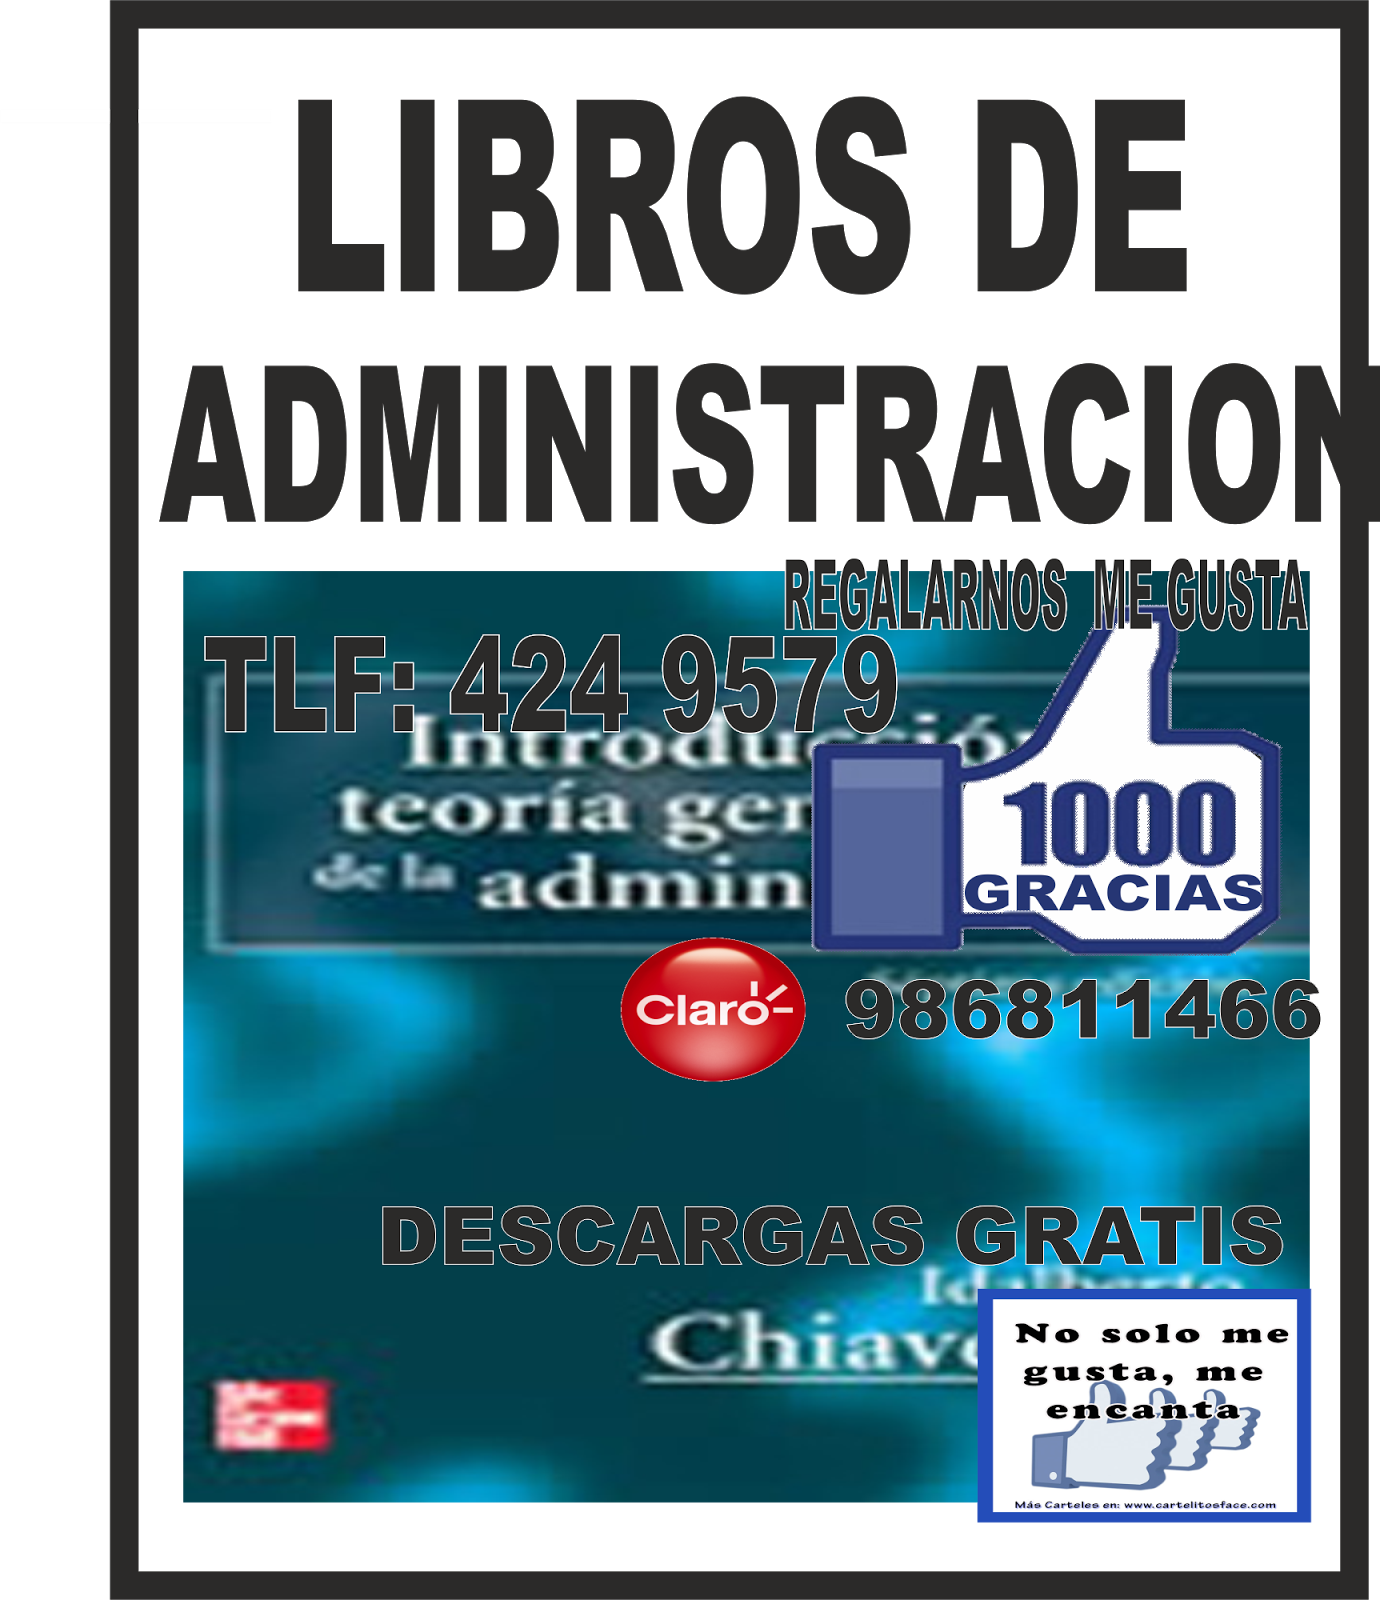 Libros Kindle Descargar Descargas Libros De Derecho Descarga Decida Triunfar